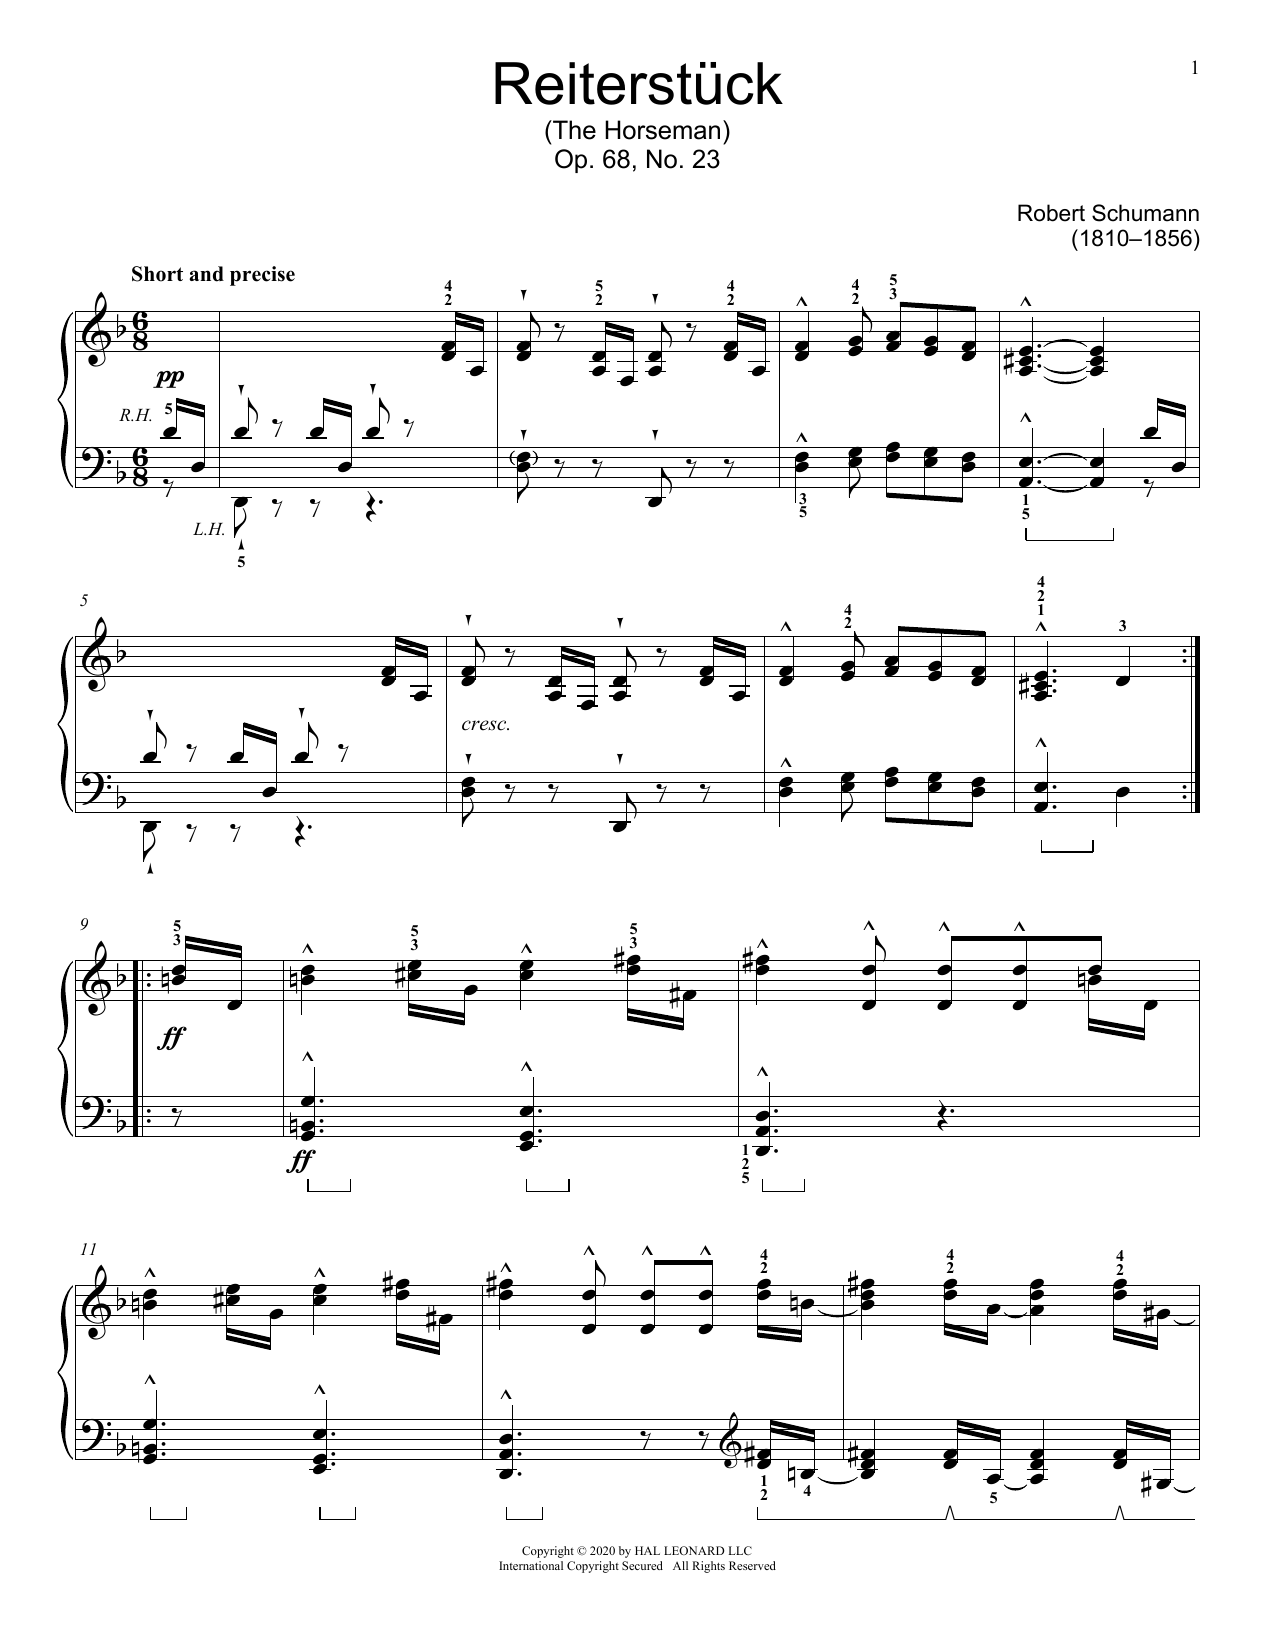 The Horseman, Op. 68, No. 23 Sheet Music